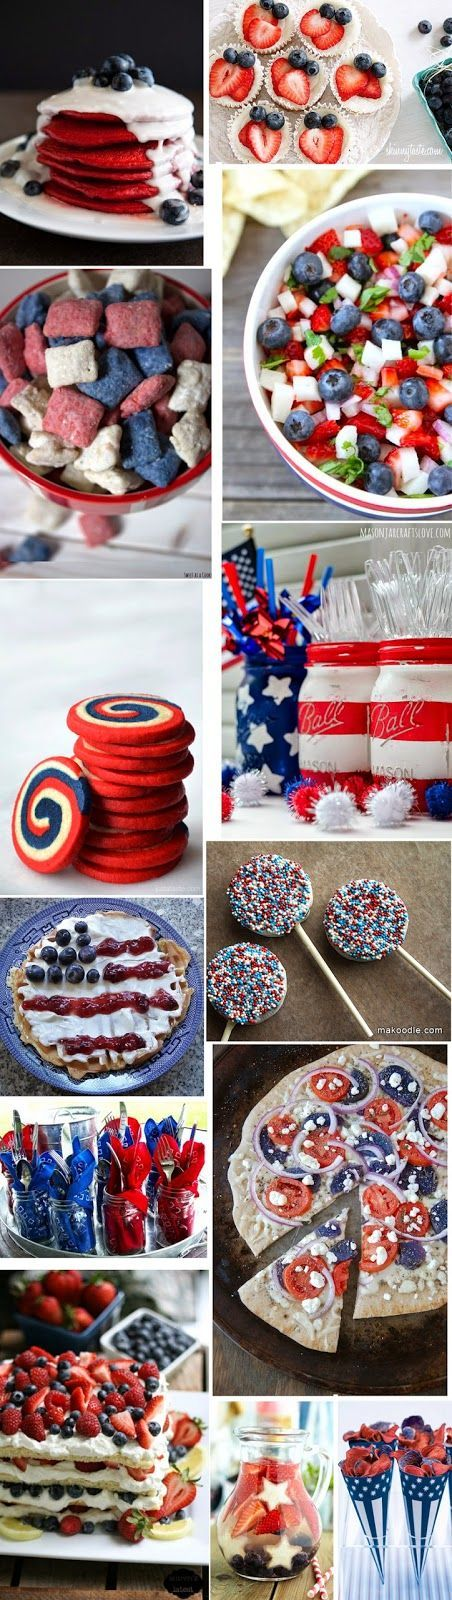 Patriotic Food Recipes + Decor Ideas - Memorial Day, Fourth of July, and Labor Day   Luci's Morsels